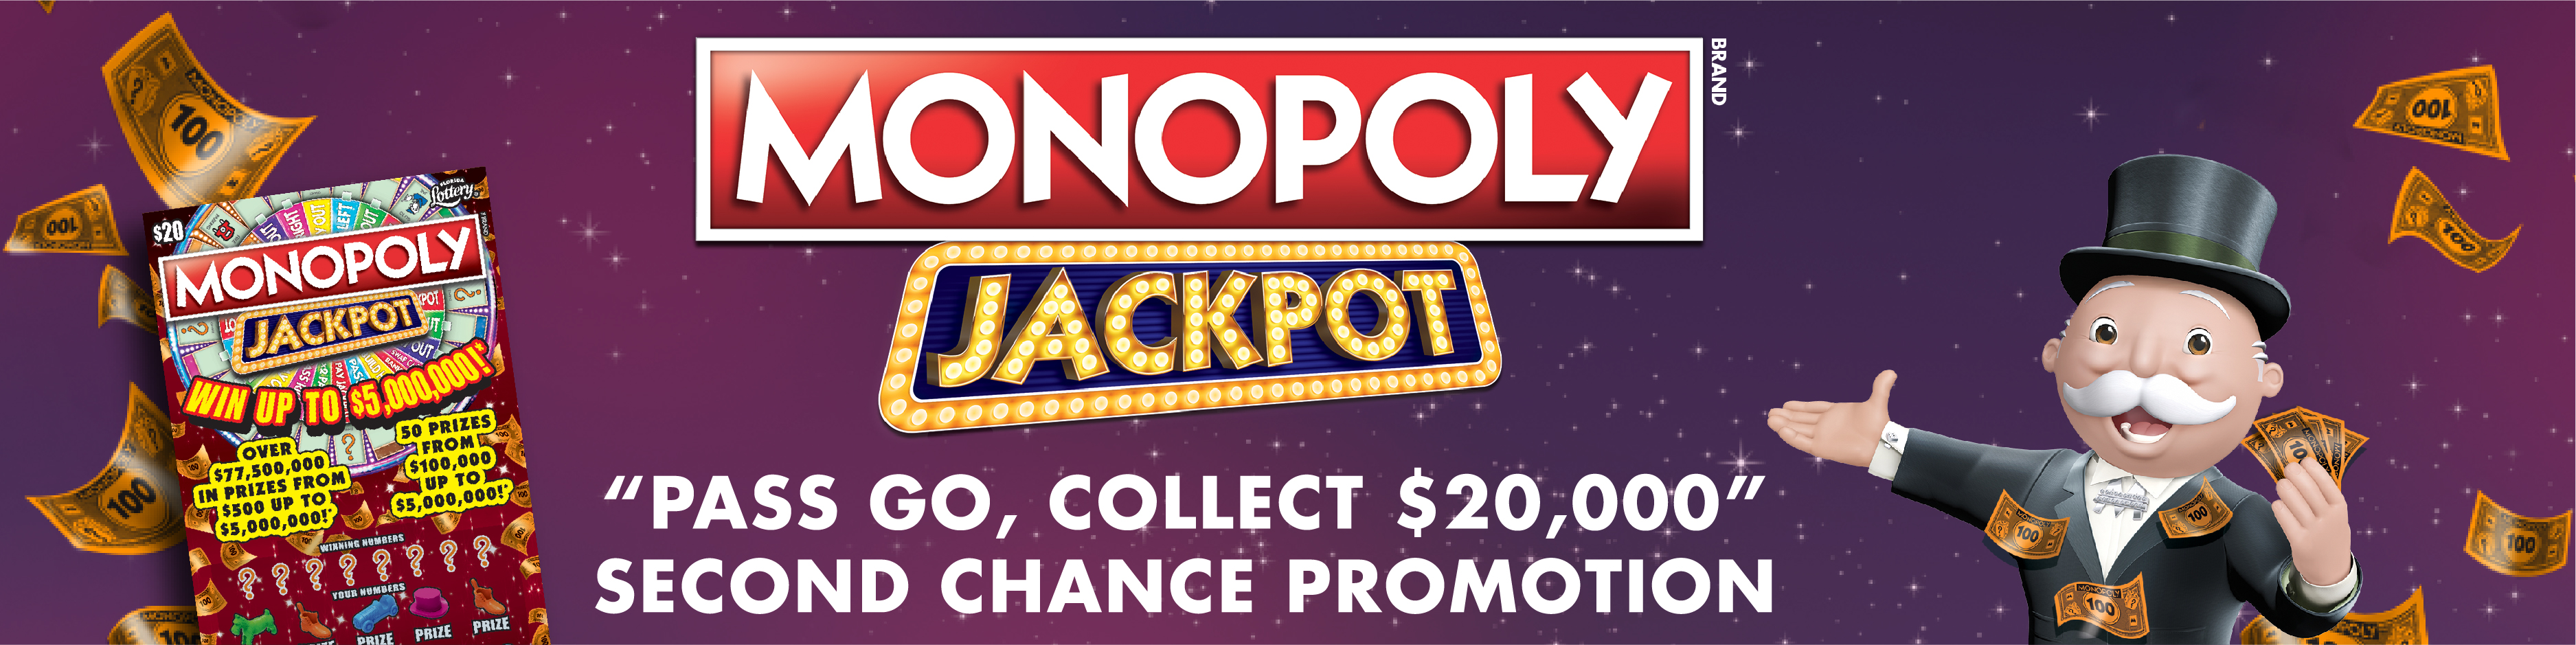 Monopoly Jackpot Second Chance Promotion